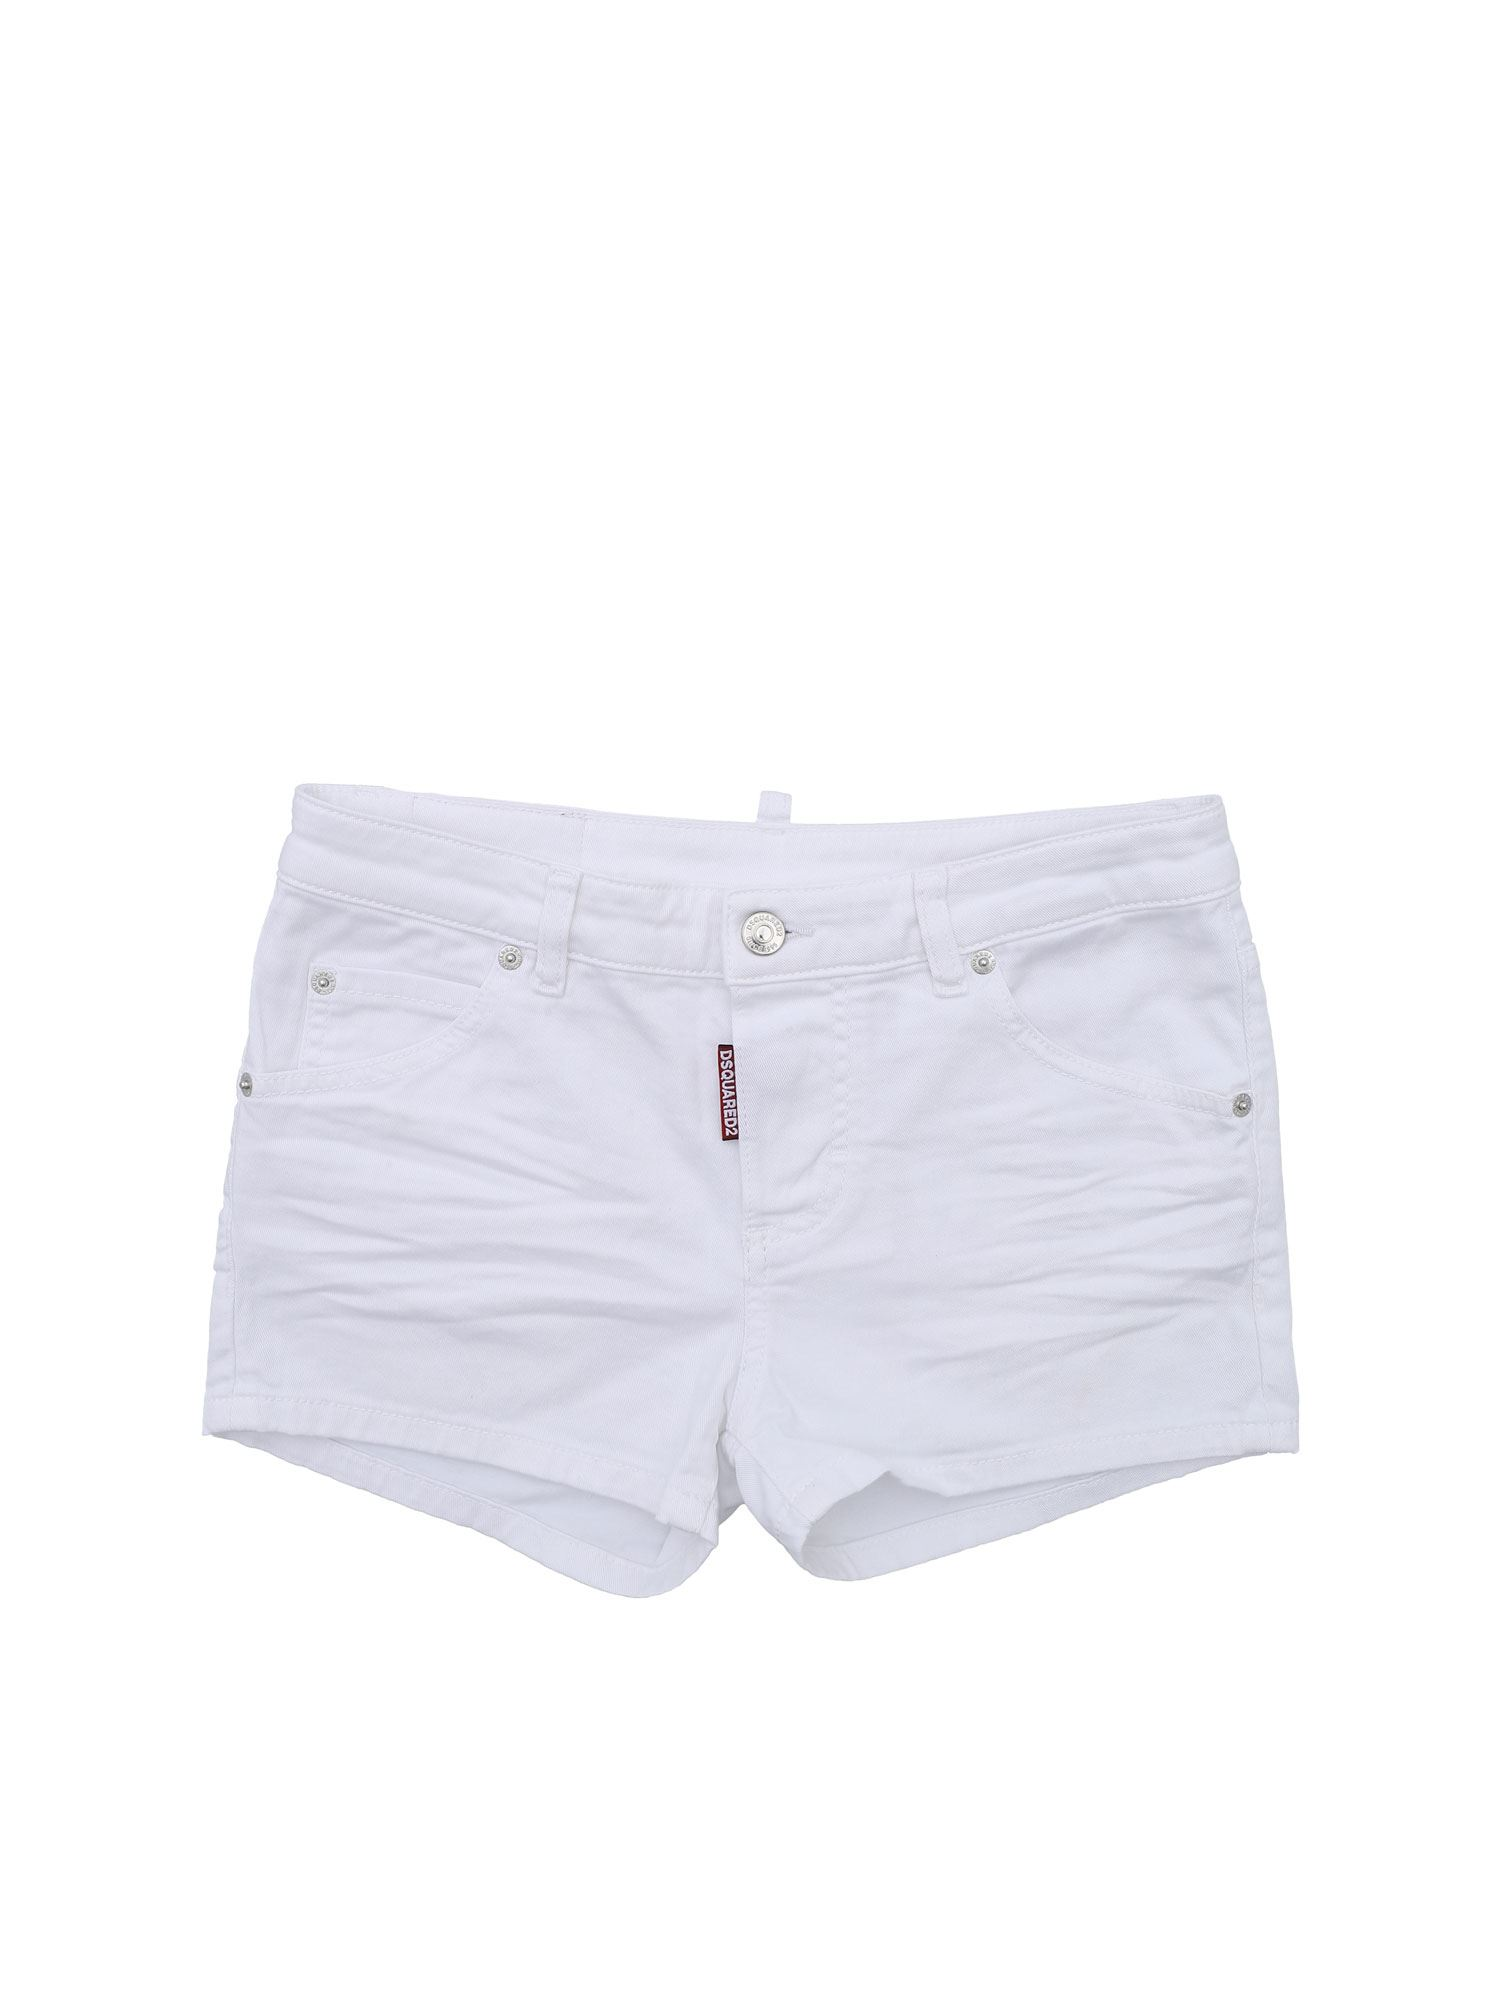 Dsquared2 WHITE SHORTS WITH CONTRASTING LOGO